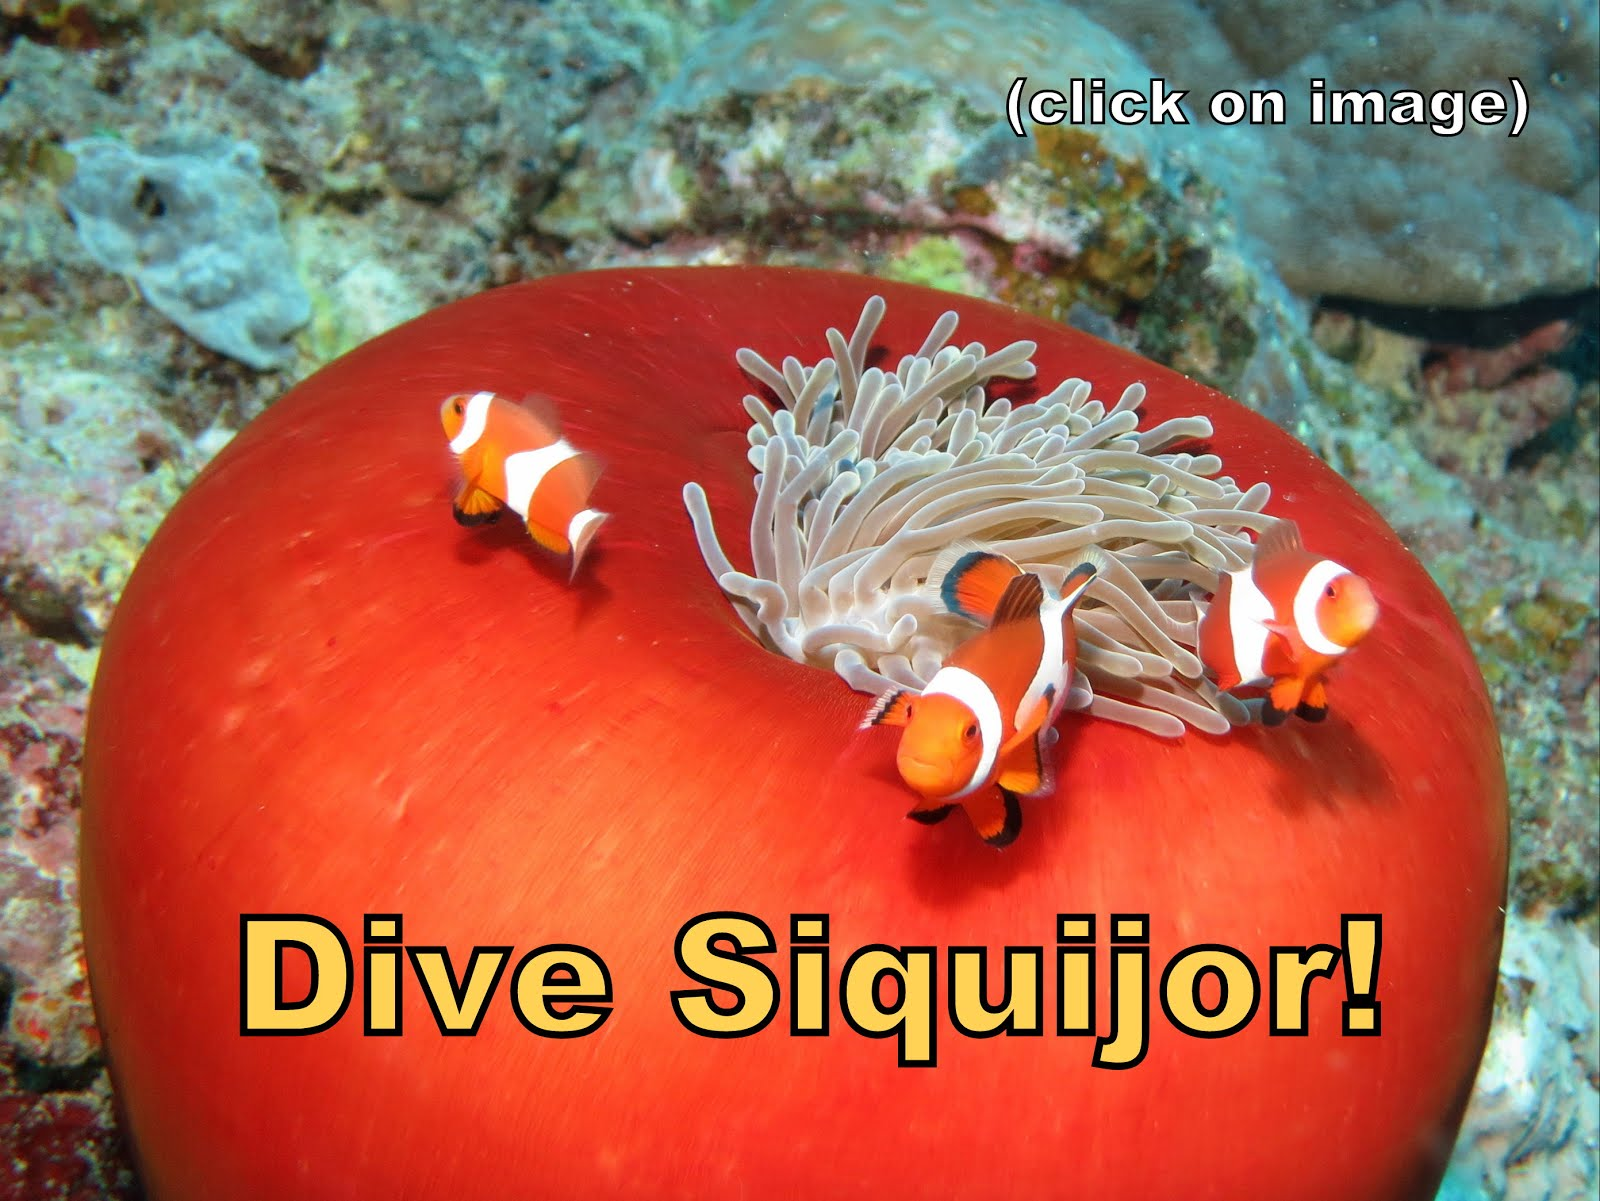 Dive Siquijor - click on image for details